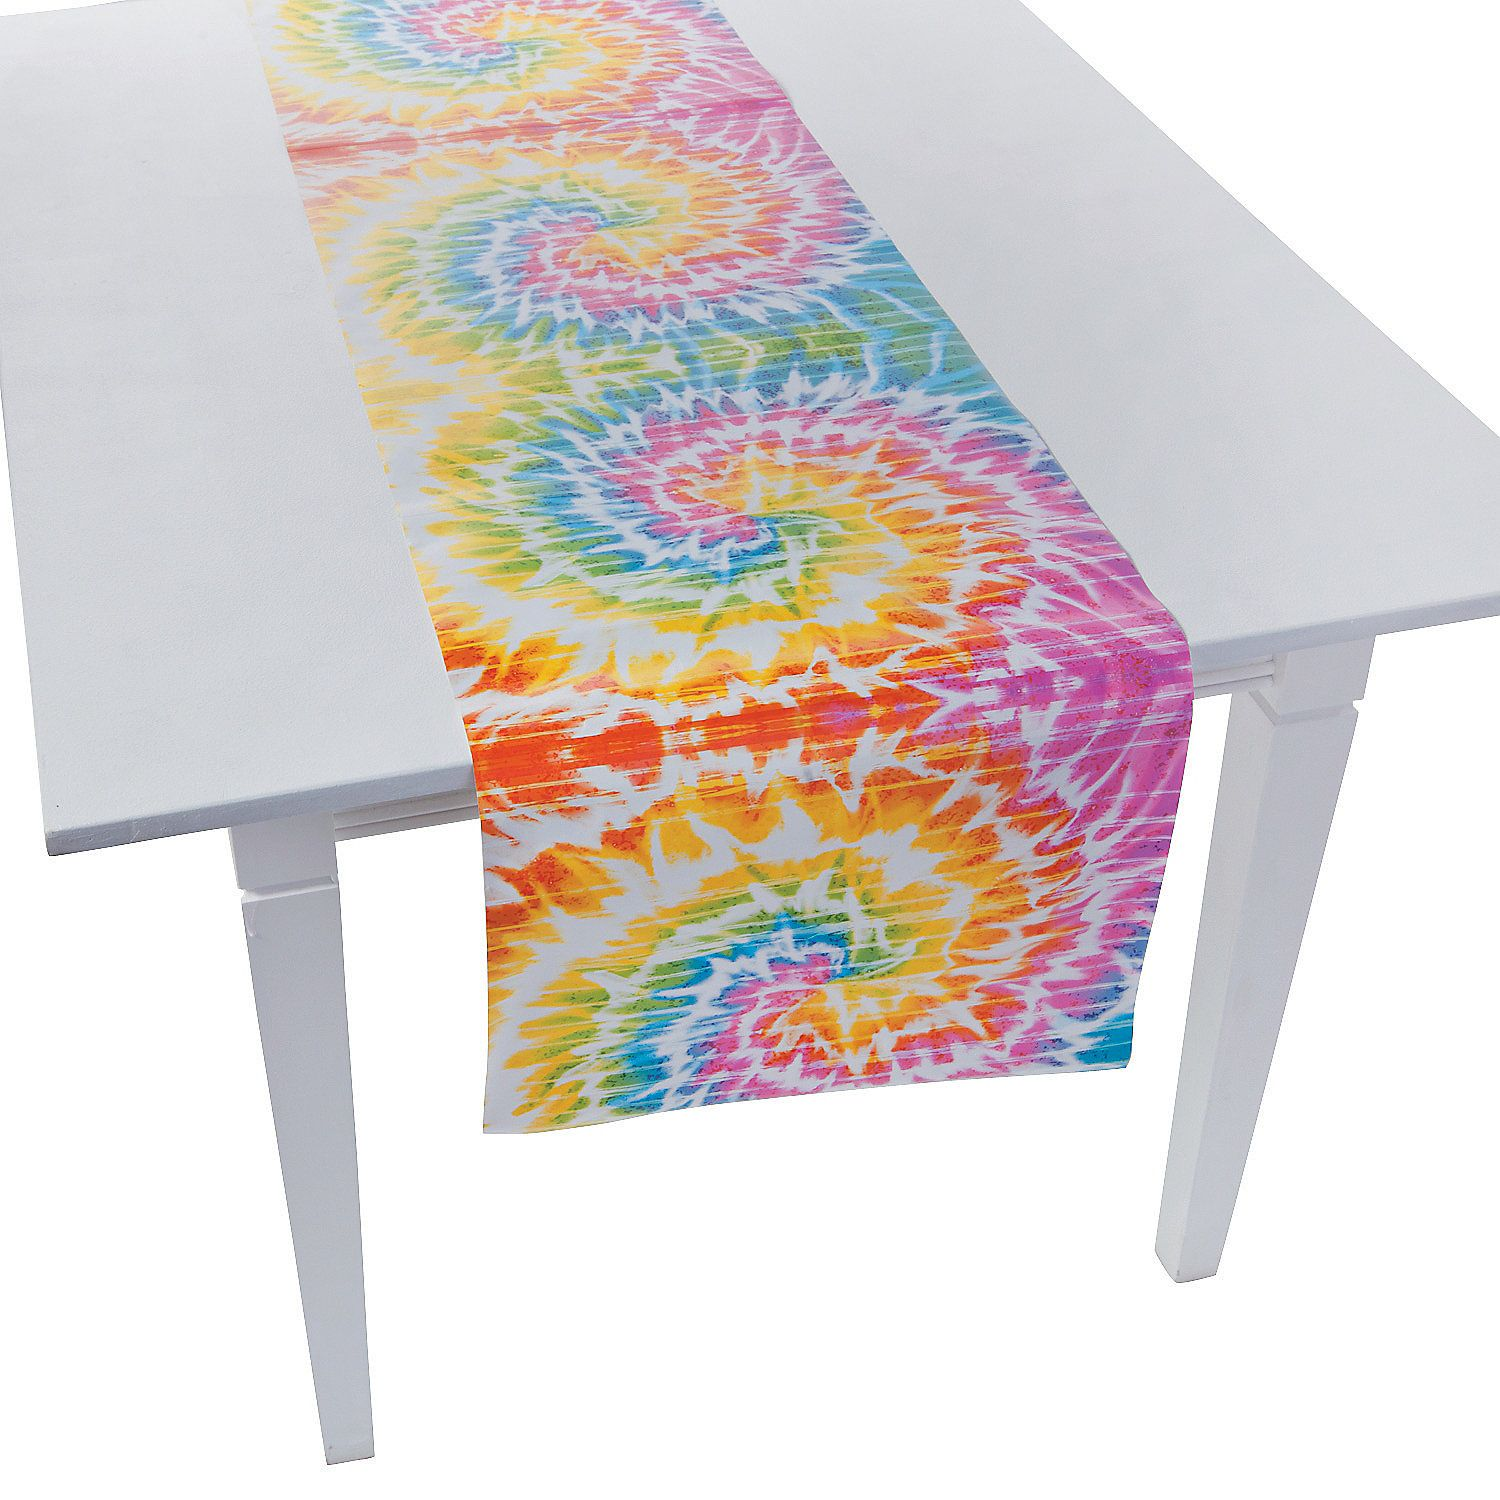 Dress up your party table in some groovy gear with this handy Beach Bum Table Runner. Featuring a fun tie dye print this bright table runner will add a .  sc 1 st  Pinterest & Beach Bum Table Runner - OrientalTrading.com | 50th anniversary ...